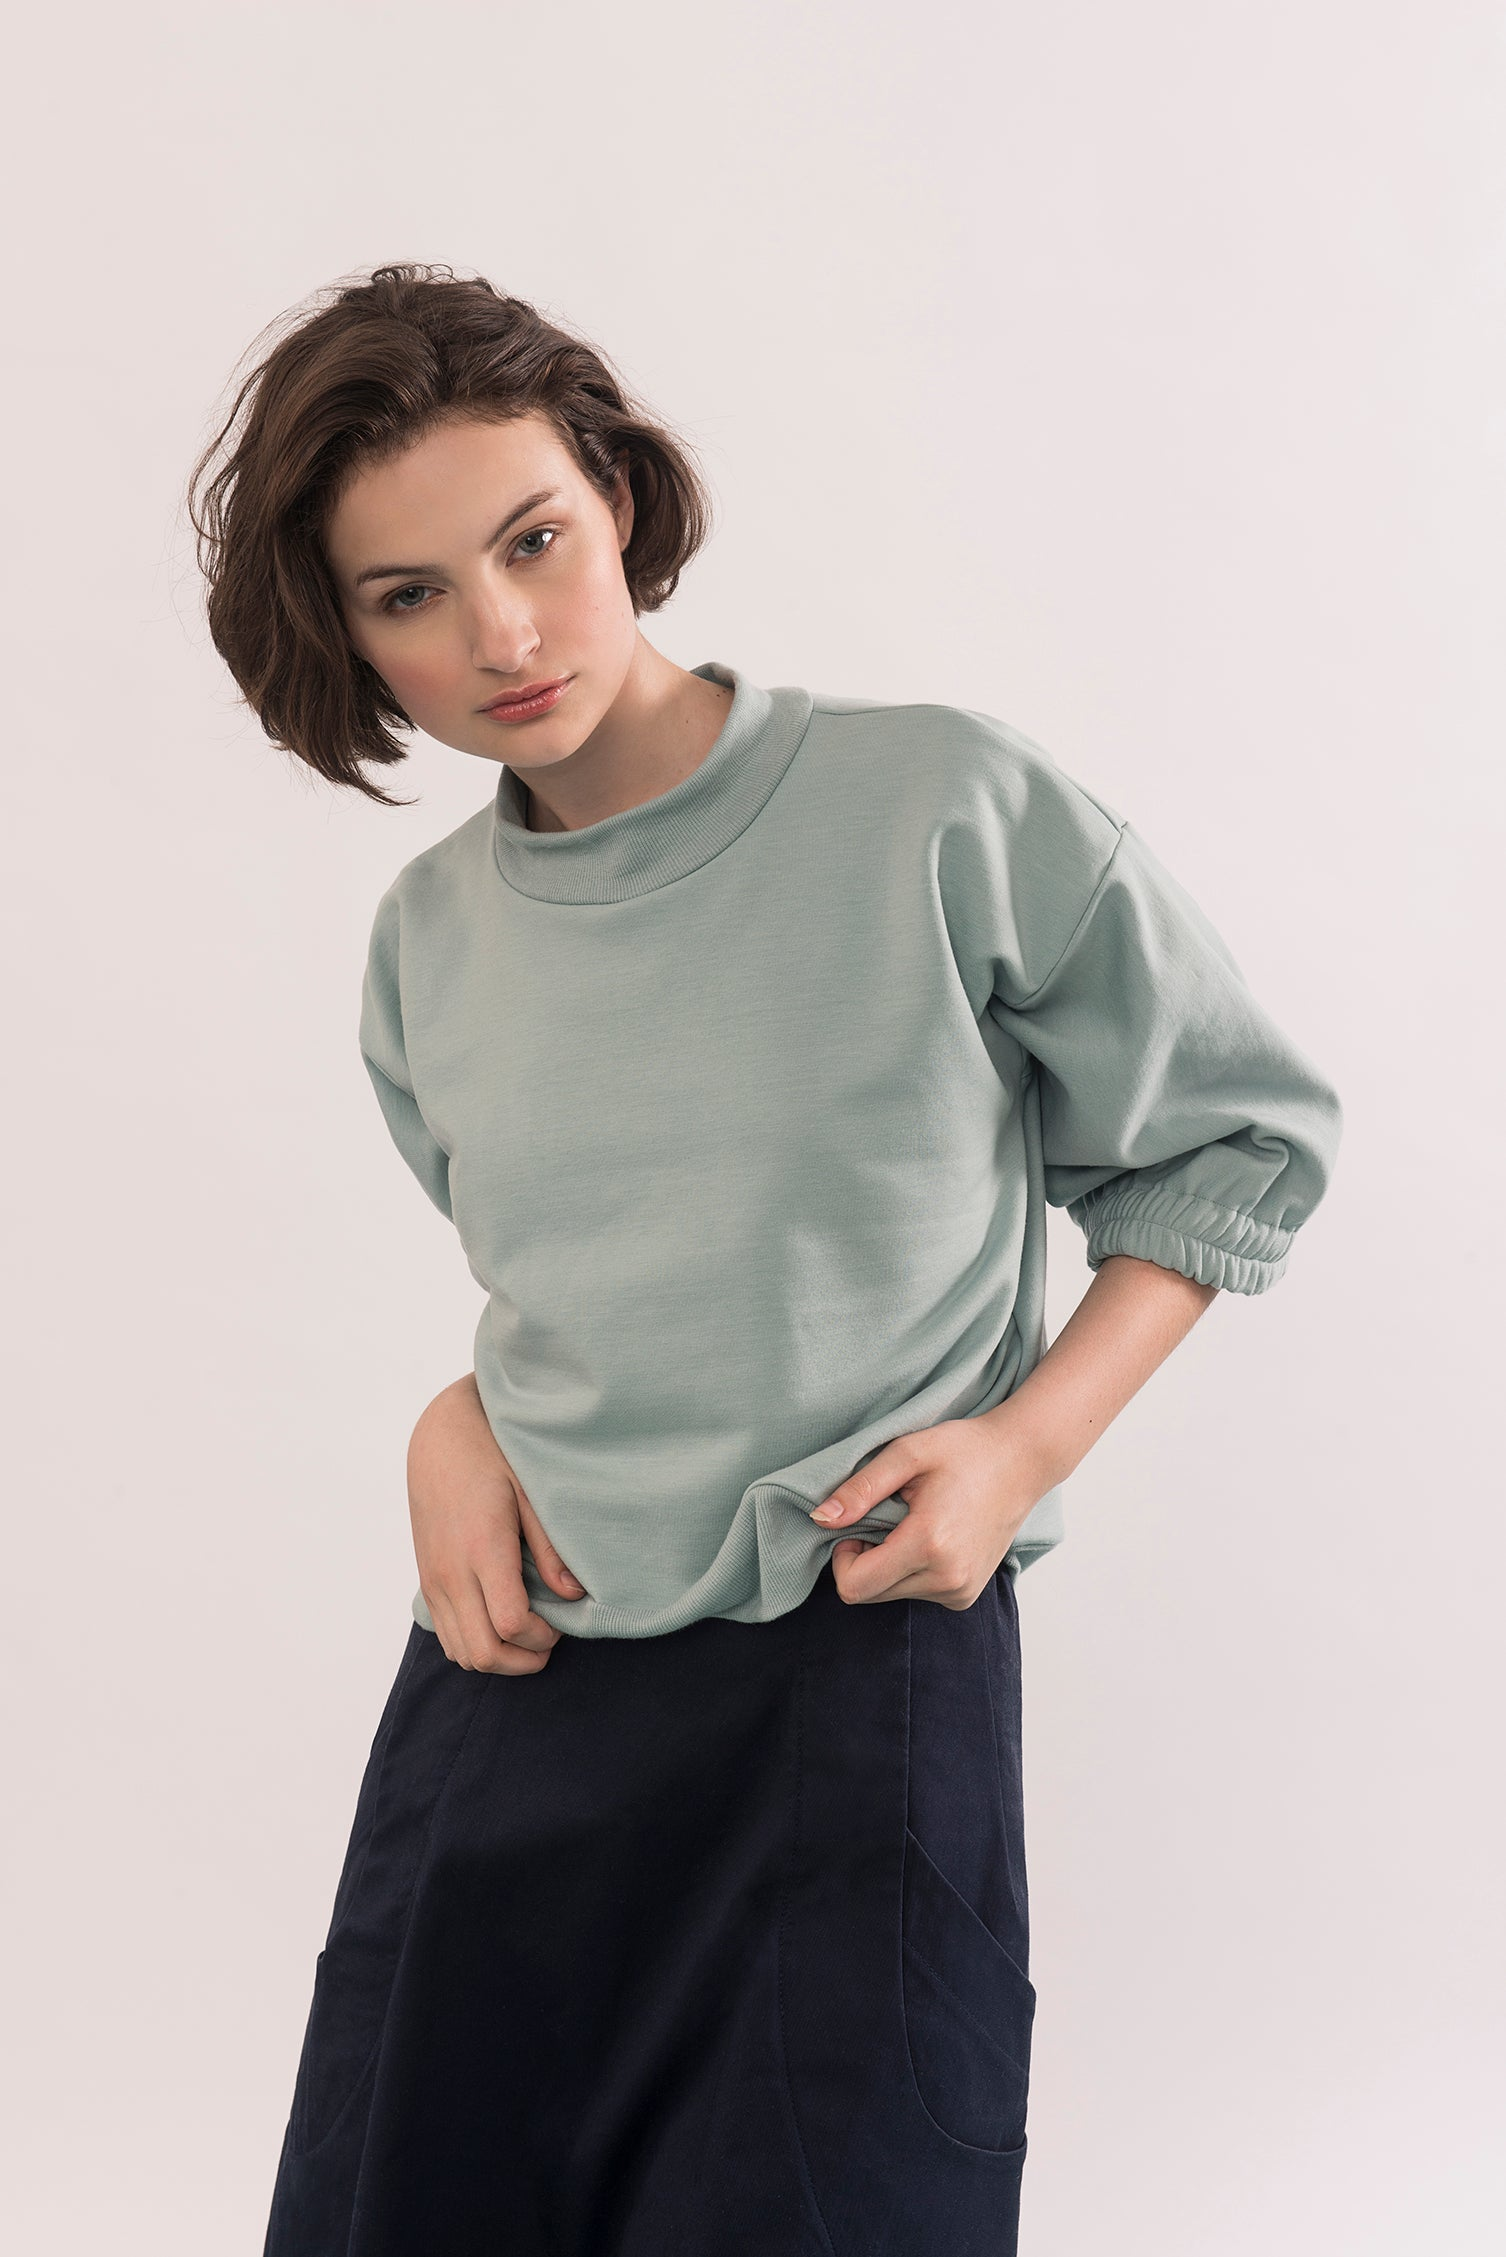 Popova Sweater by Jennifer Glasgow, Seafoam, cropped, 3/4 sleeves, dropped shoulders, ribbed neckline and waist, eco-friendly, OEKO Standard 100 certification, sizes XS to XL, made in Montreal